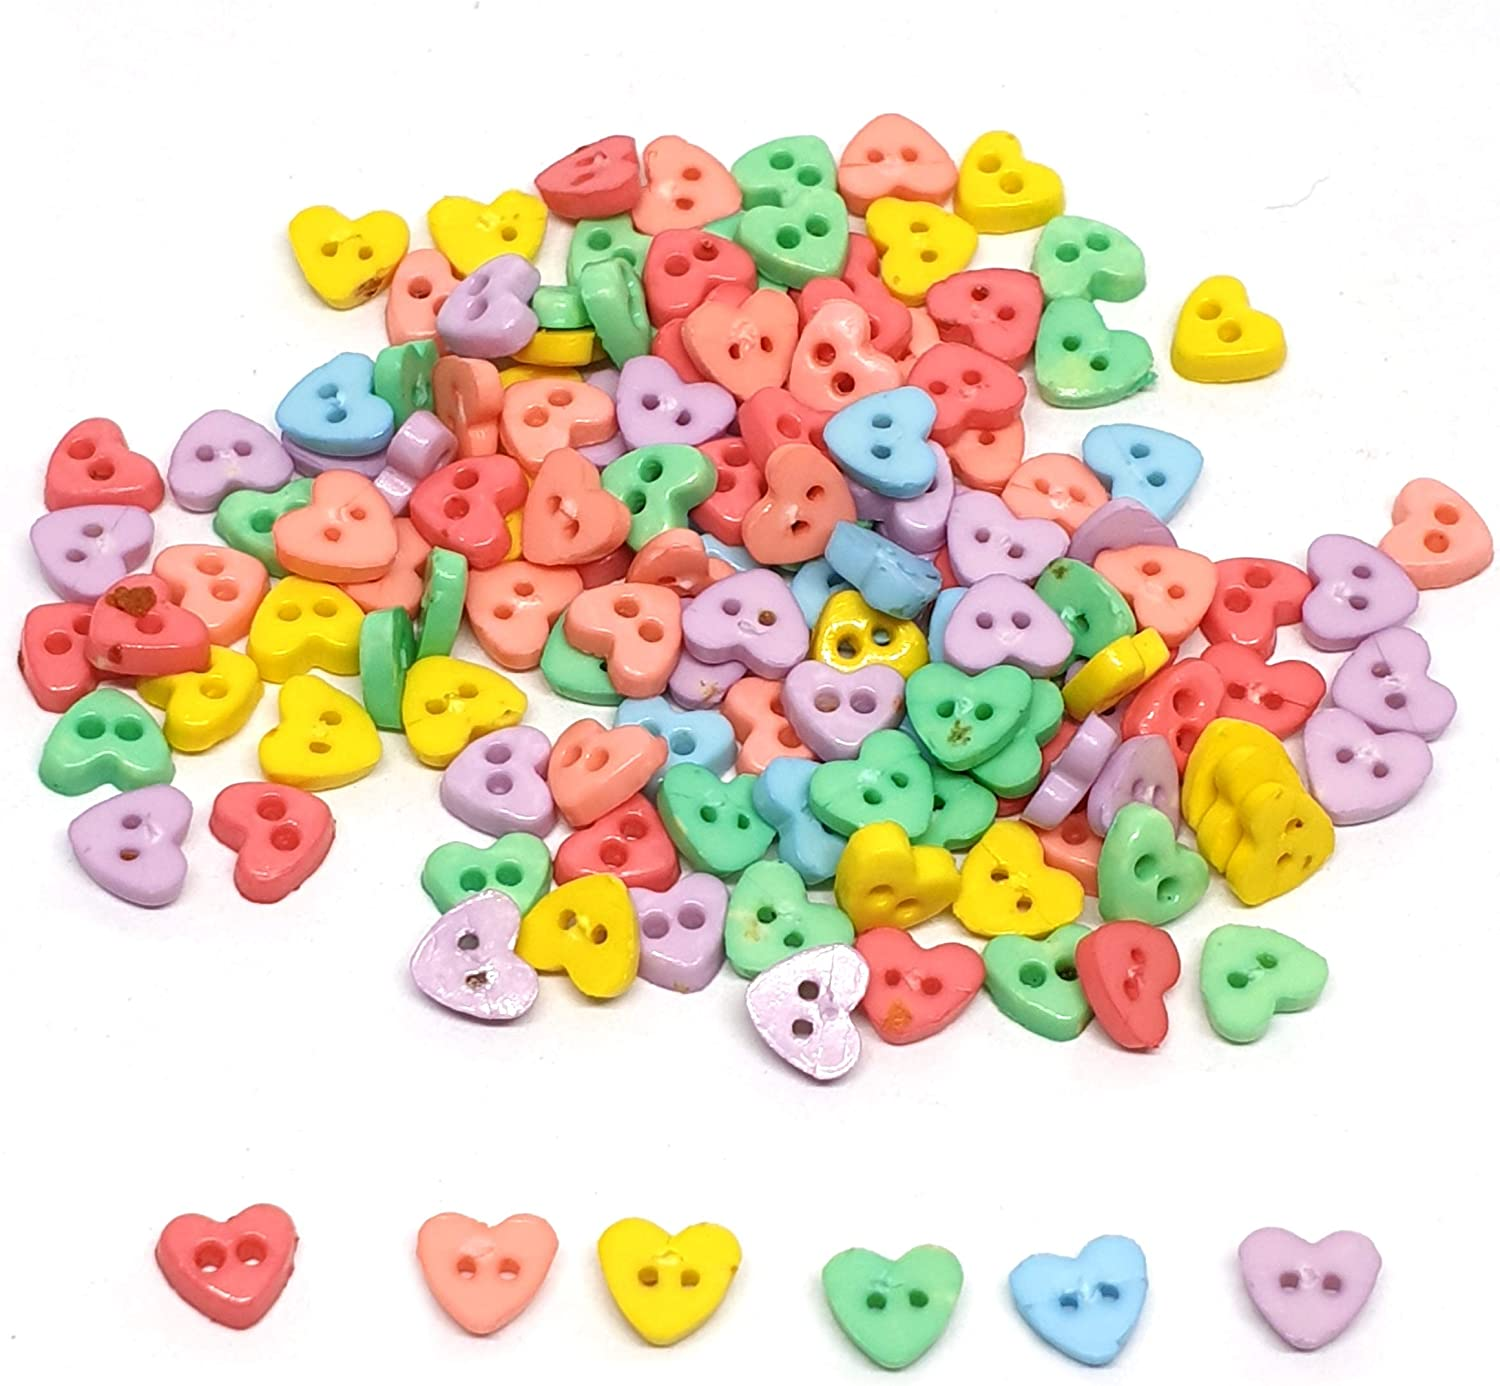 10 25 Or 50 Mixed Pastel Coloured Wood Heart Buttons 20mm